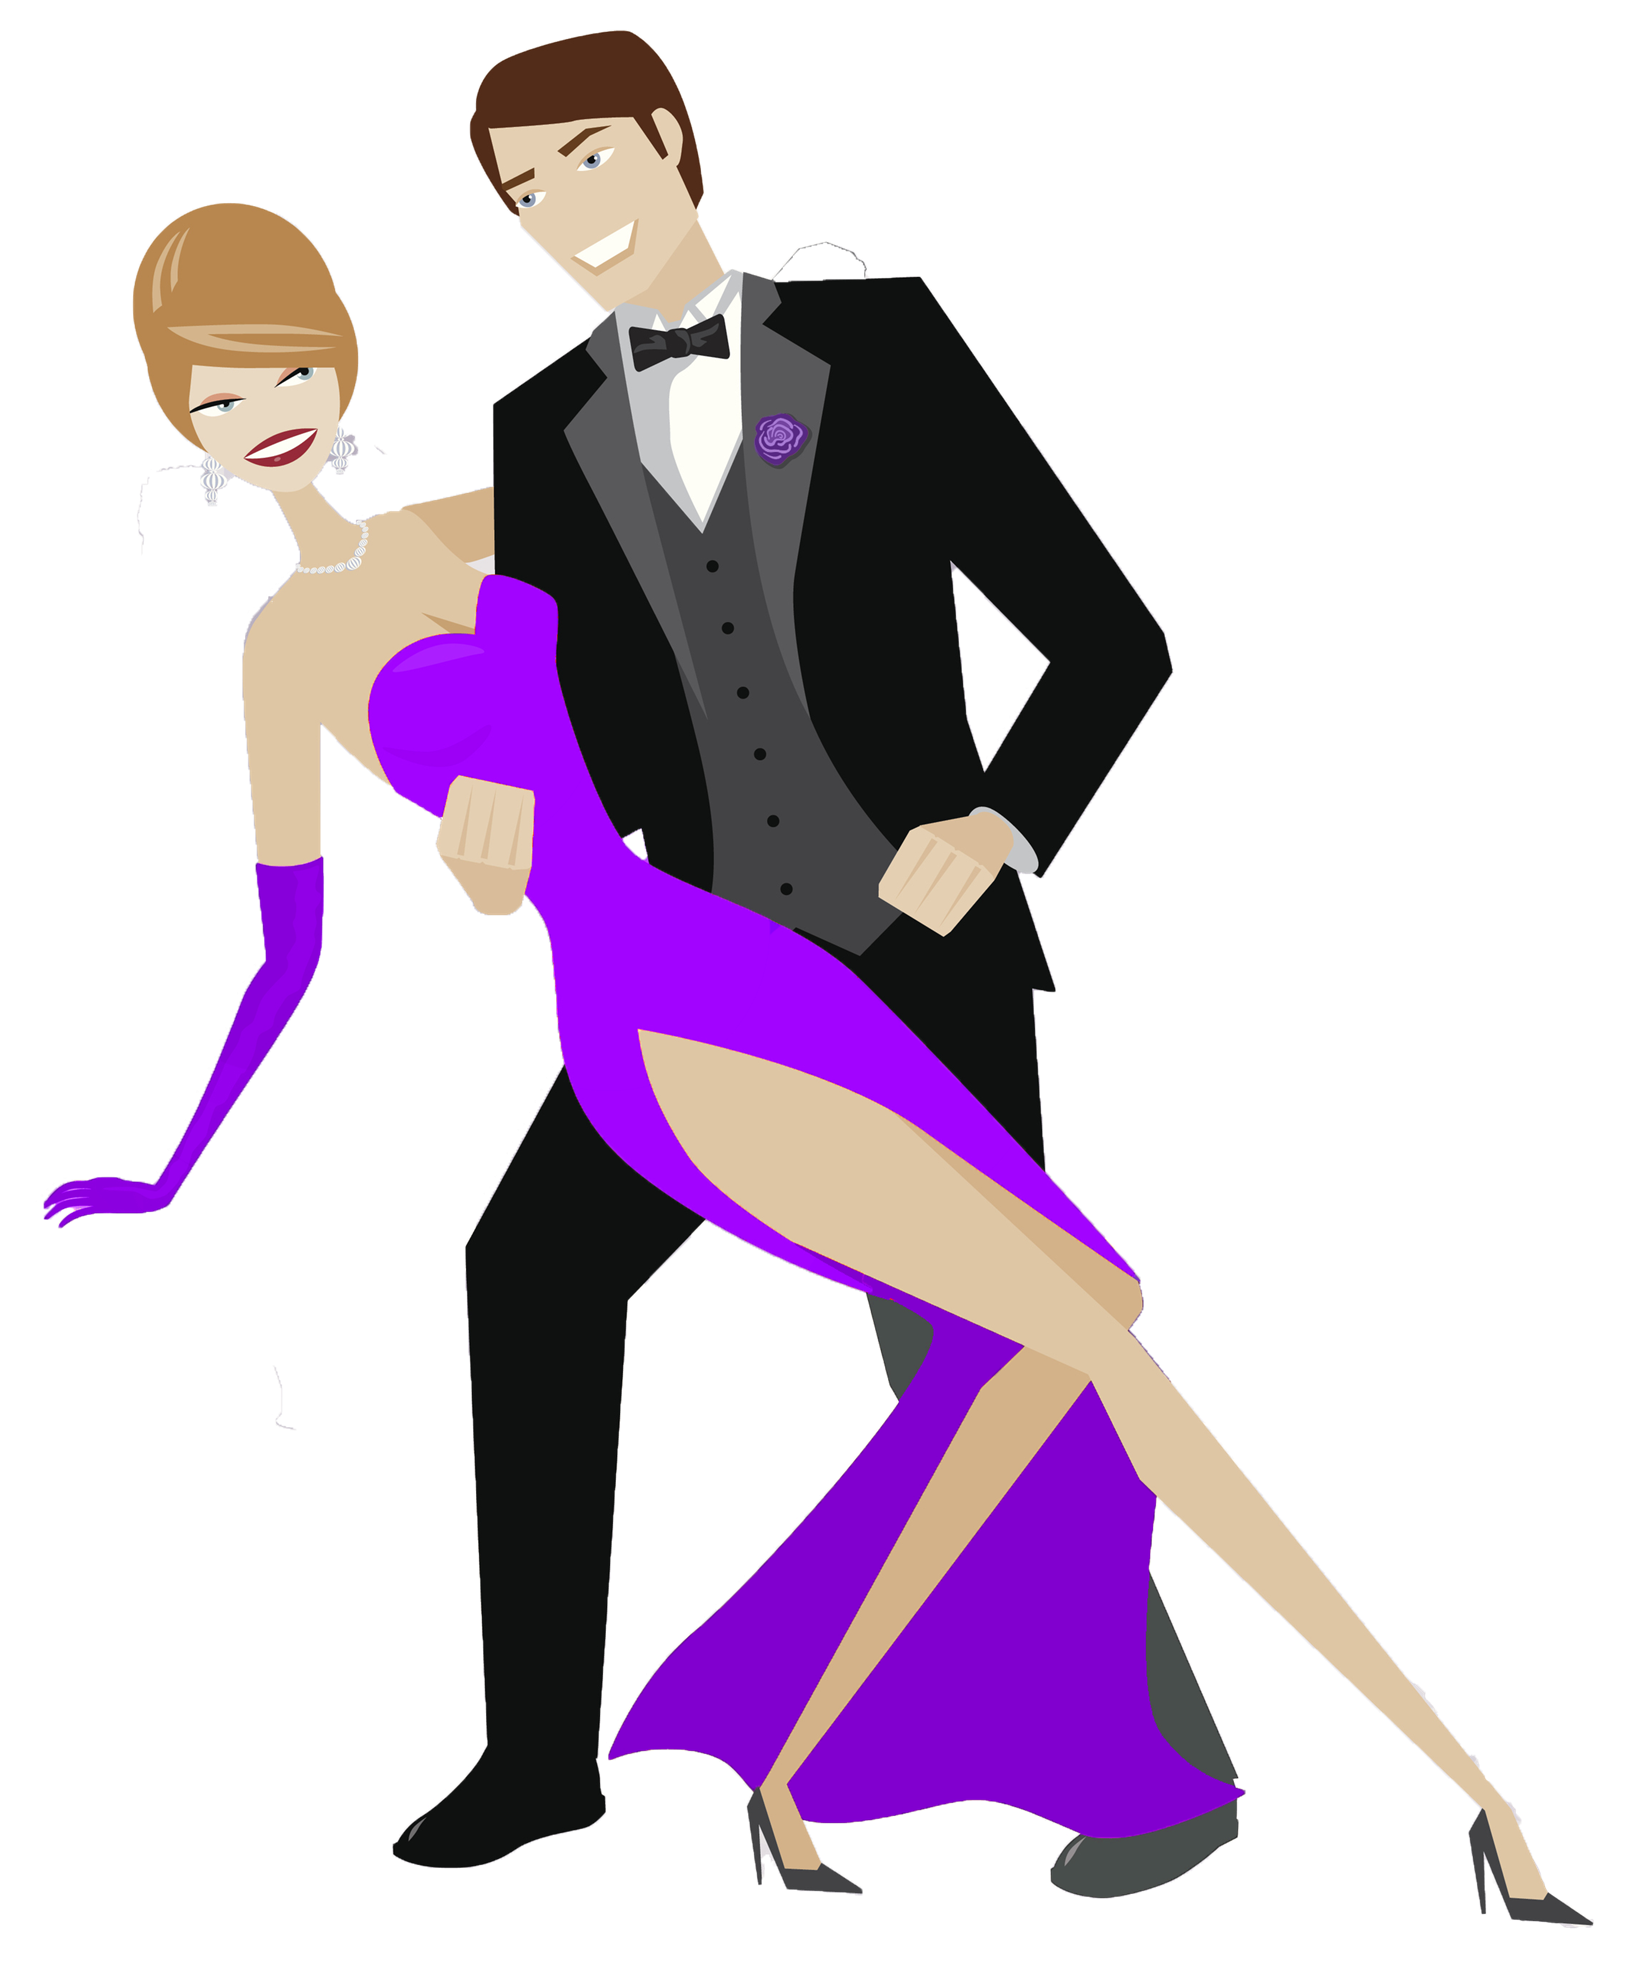 Cancer Ball -- Dancing Couple